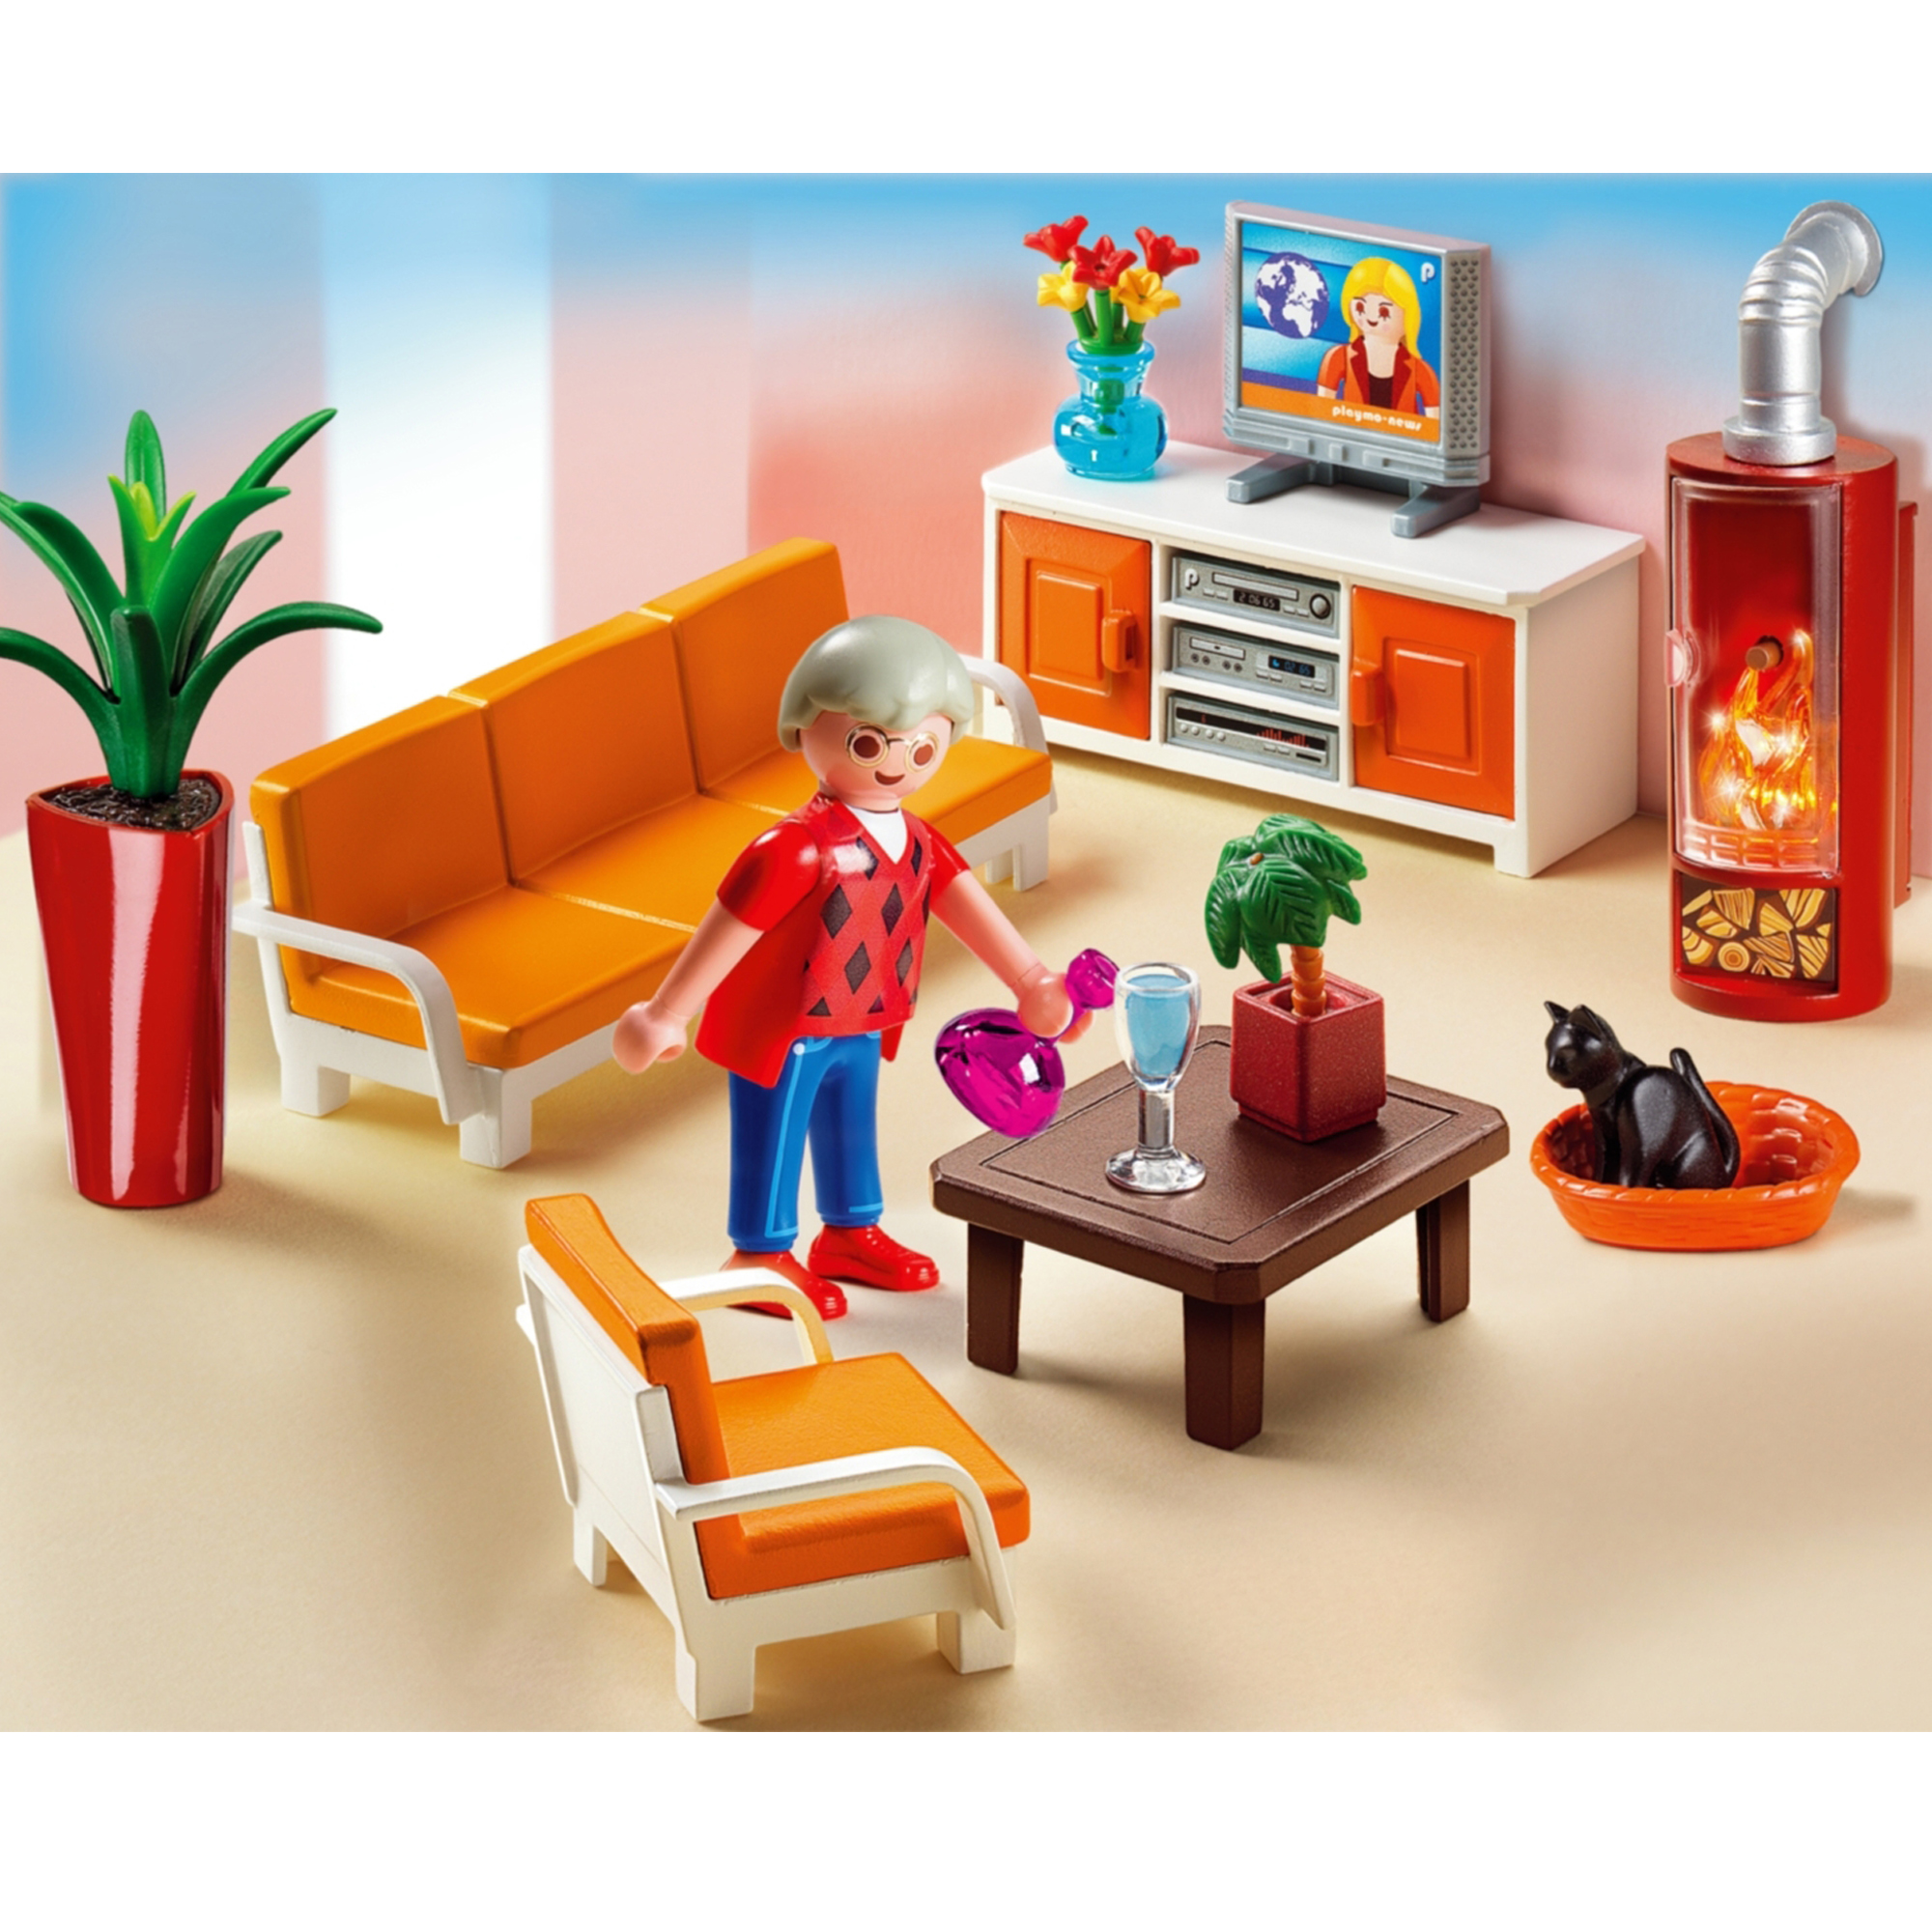 Playmobil City Life Küche Playmobil Grande Mansion Living Room 5332